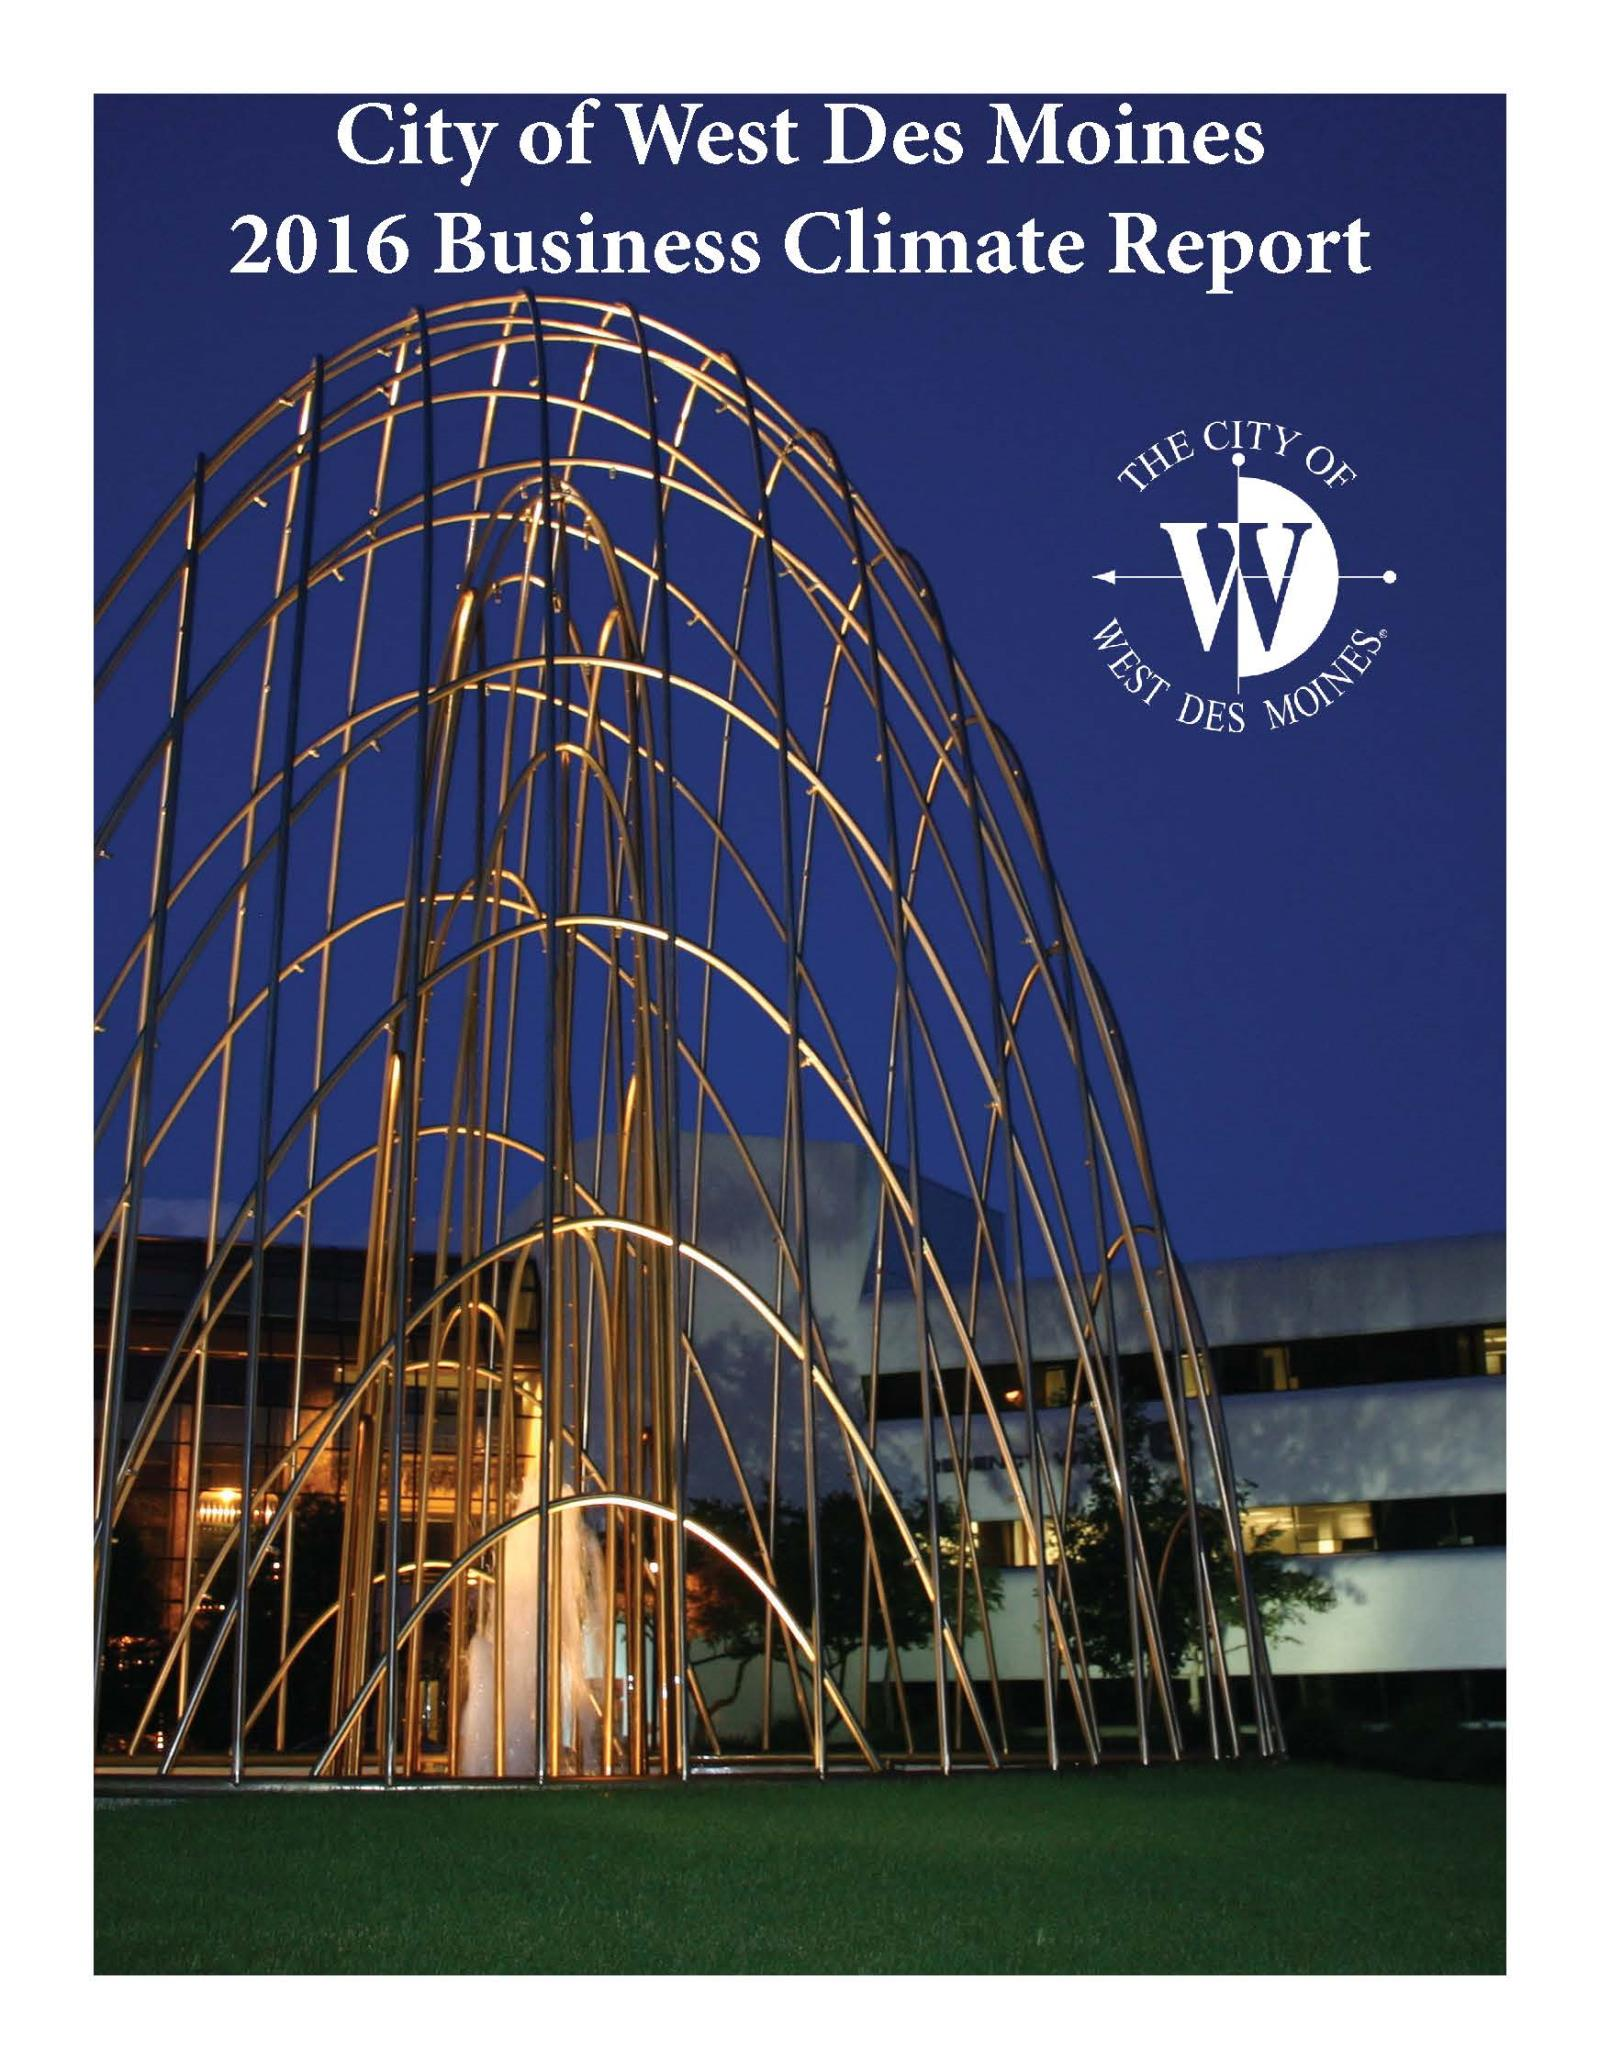 2016 Business Climate Report